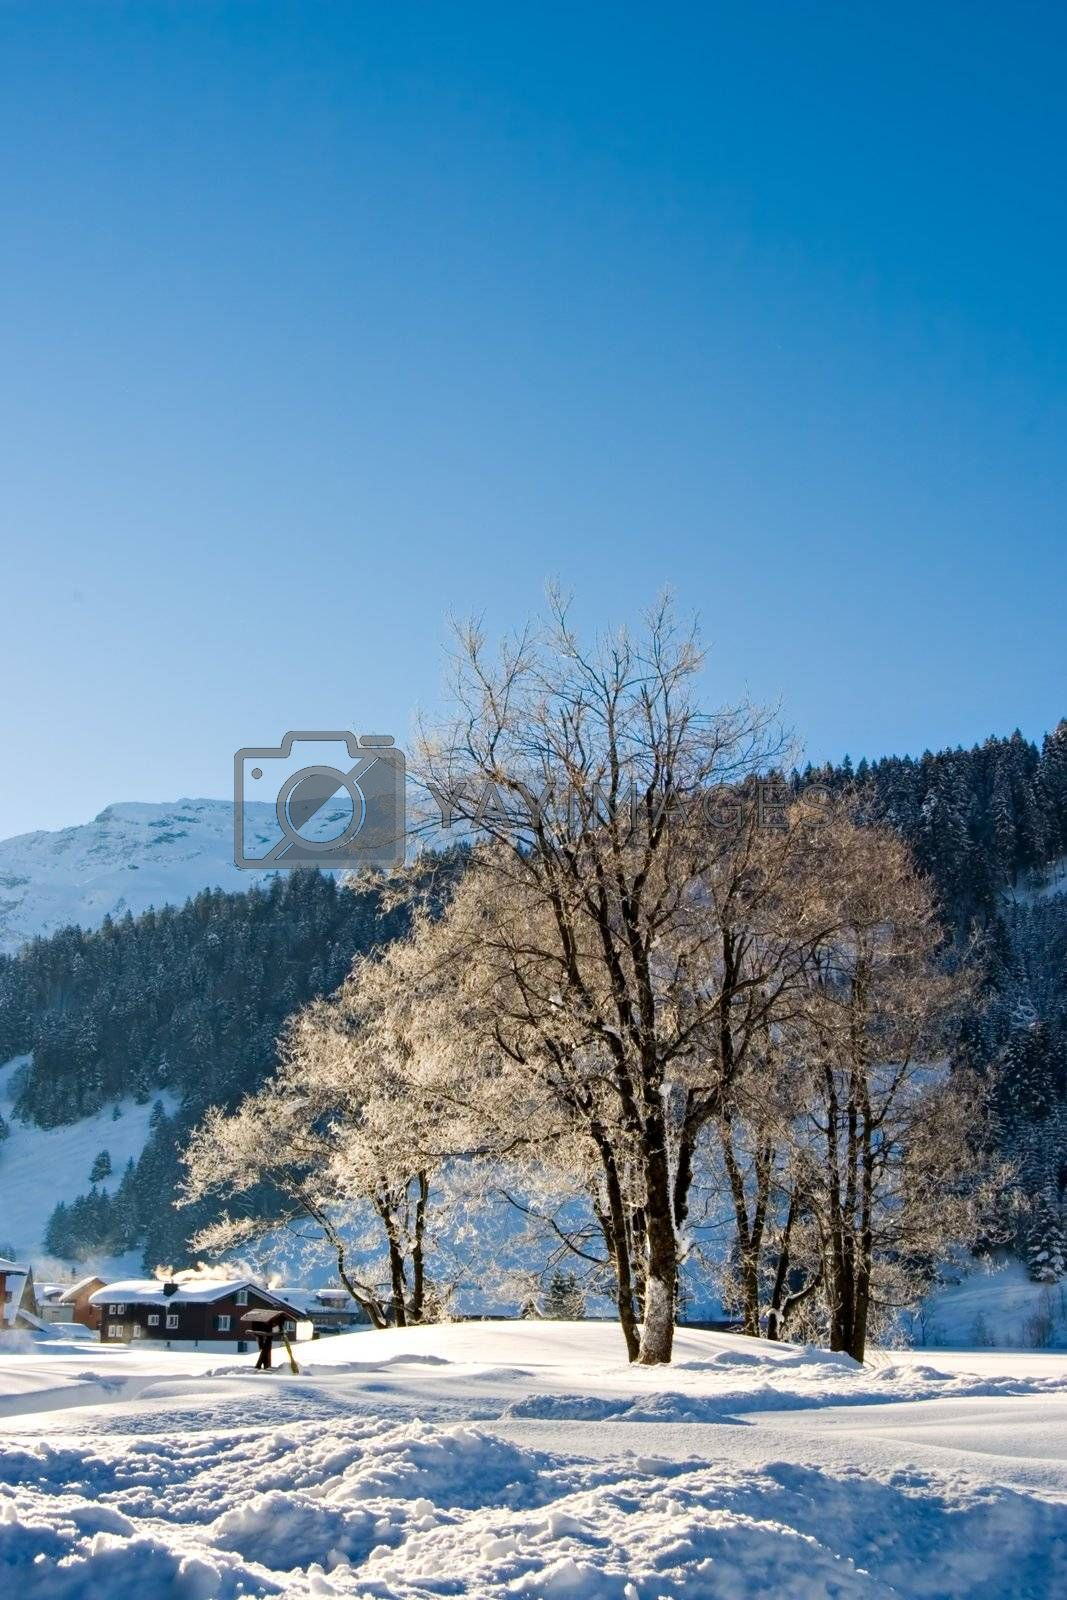 Snowy winter morning in the Swiss Alps